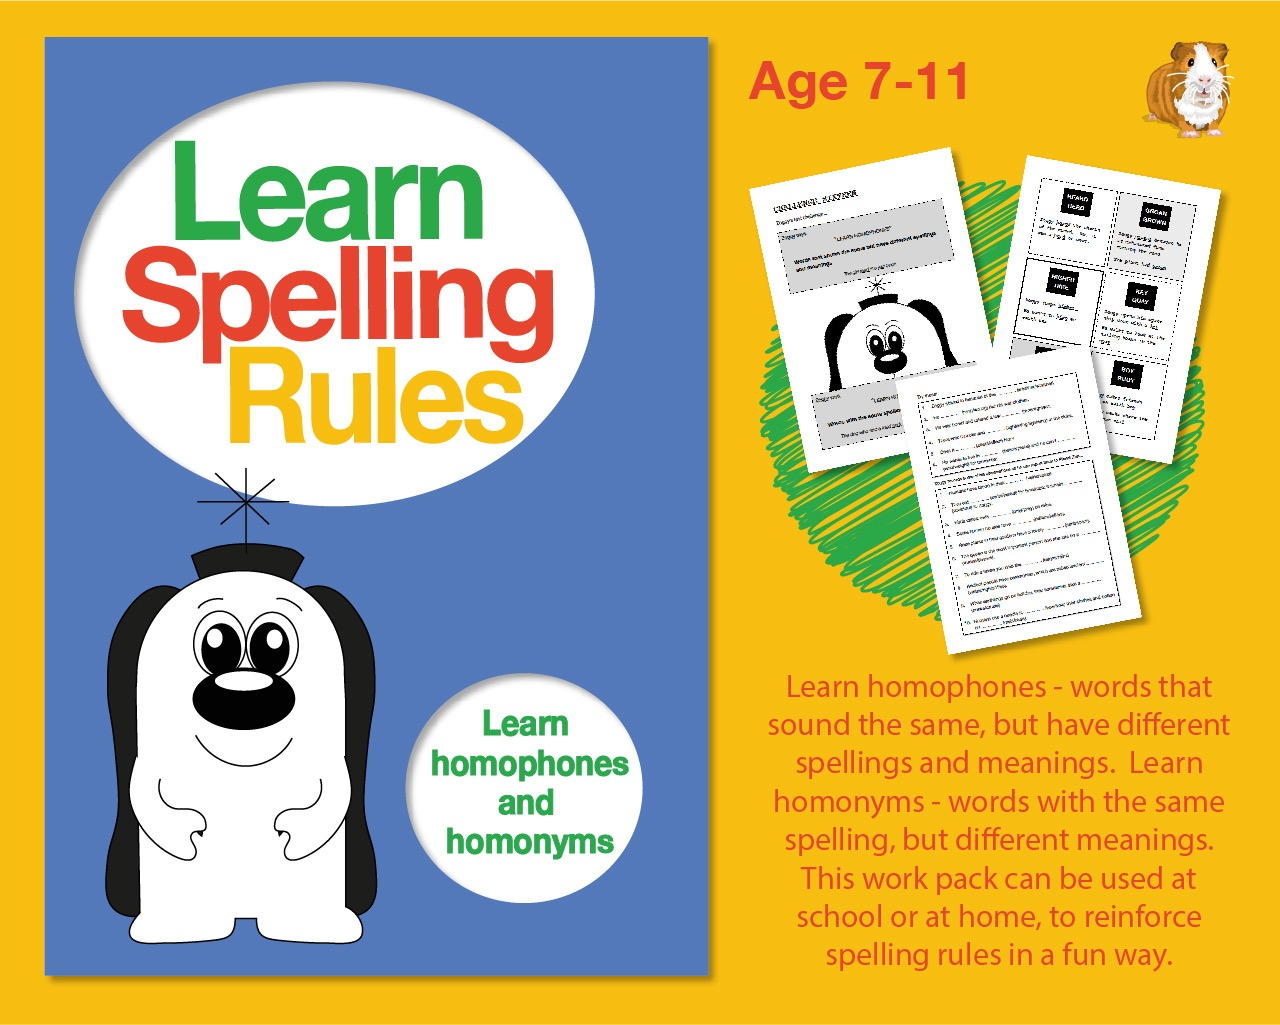 Learn Spelling Rules: Learn Homophones And Homonyms (7-11 years)